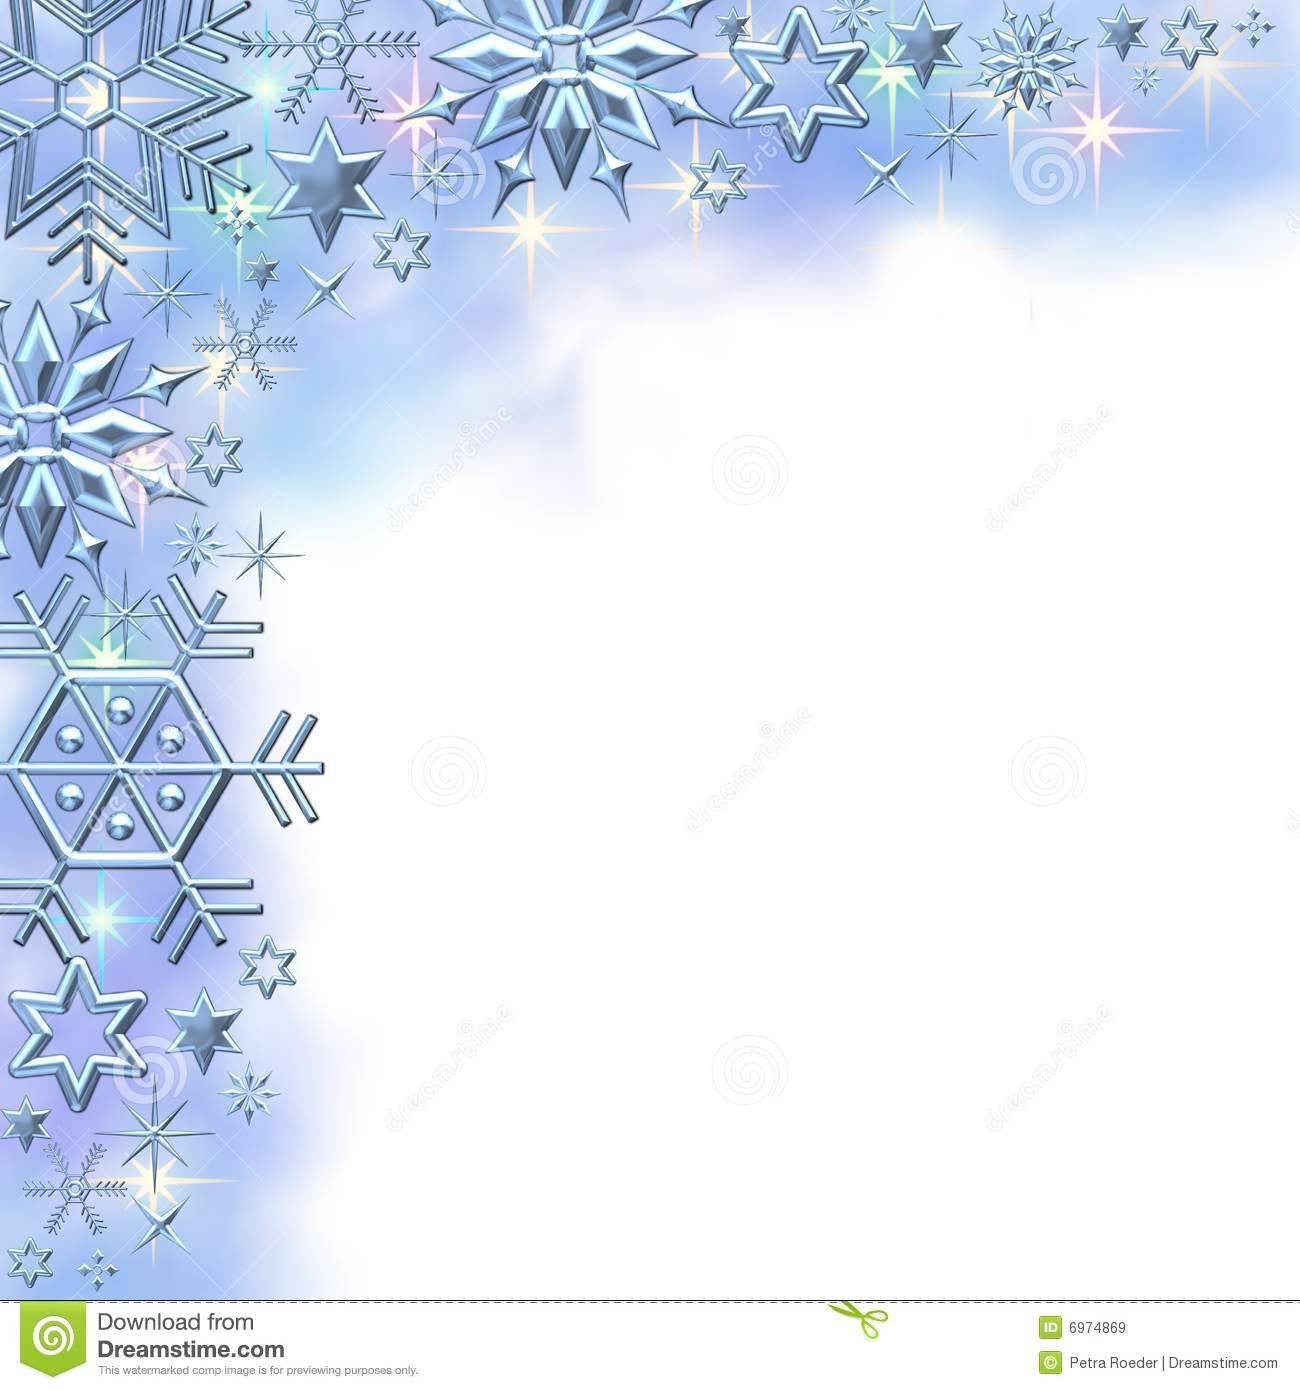 An illustration of snowflakes for winter as a border. .